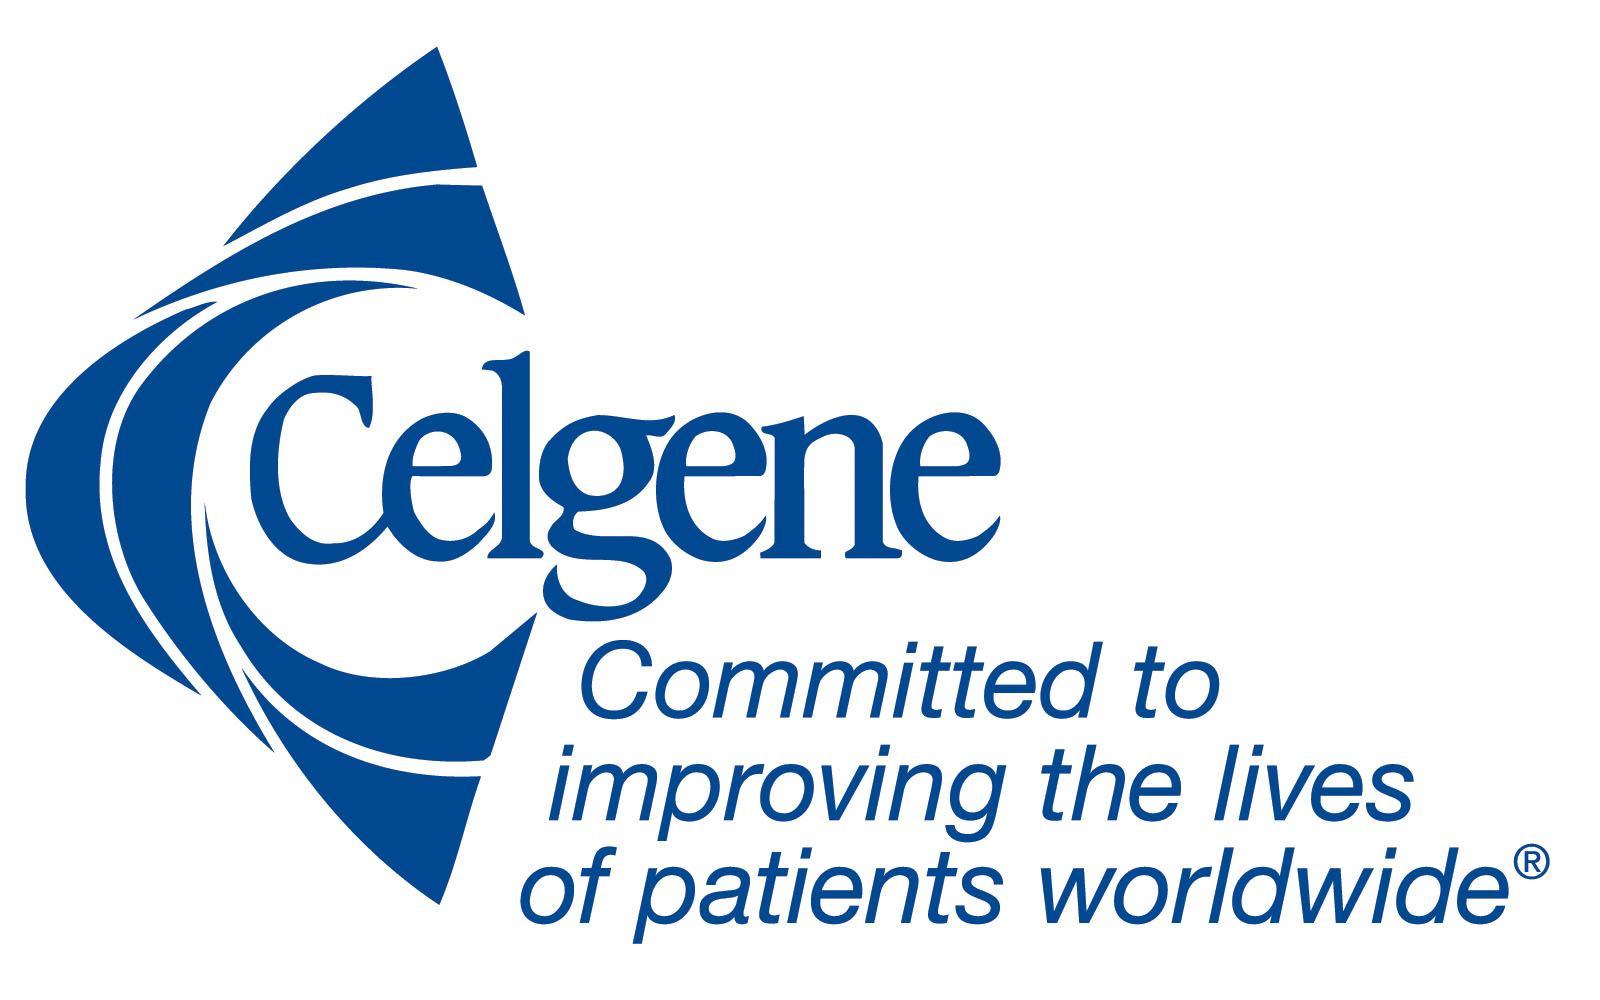 Celgene_Logo_Committed_280.jpeg